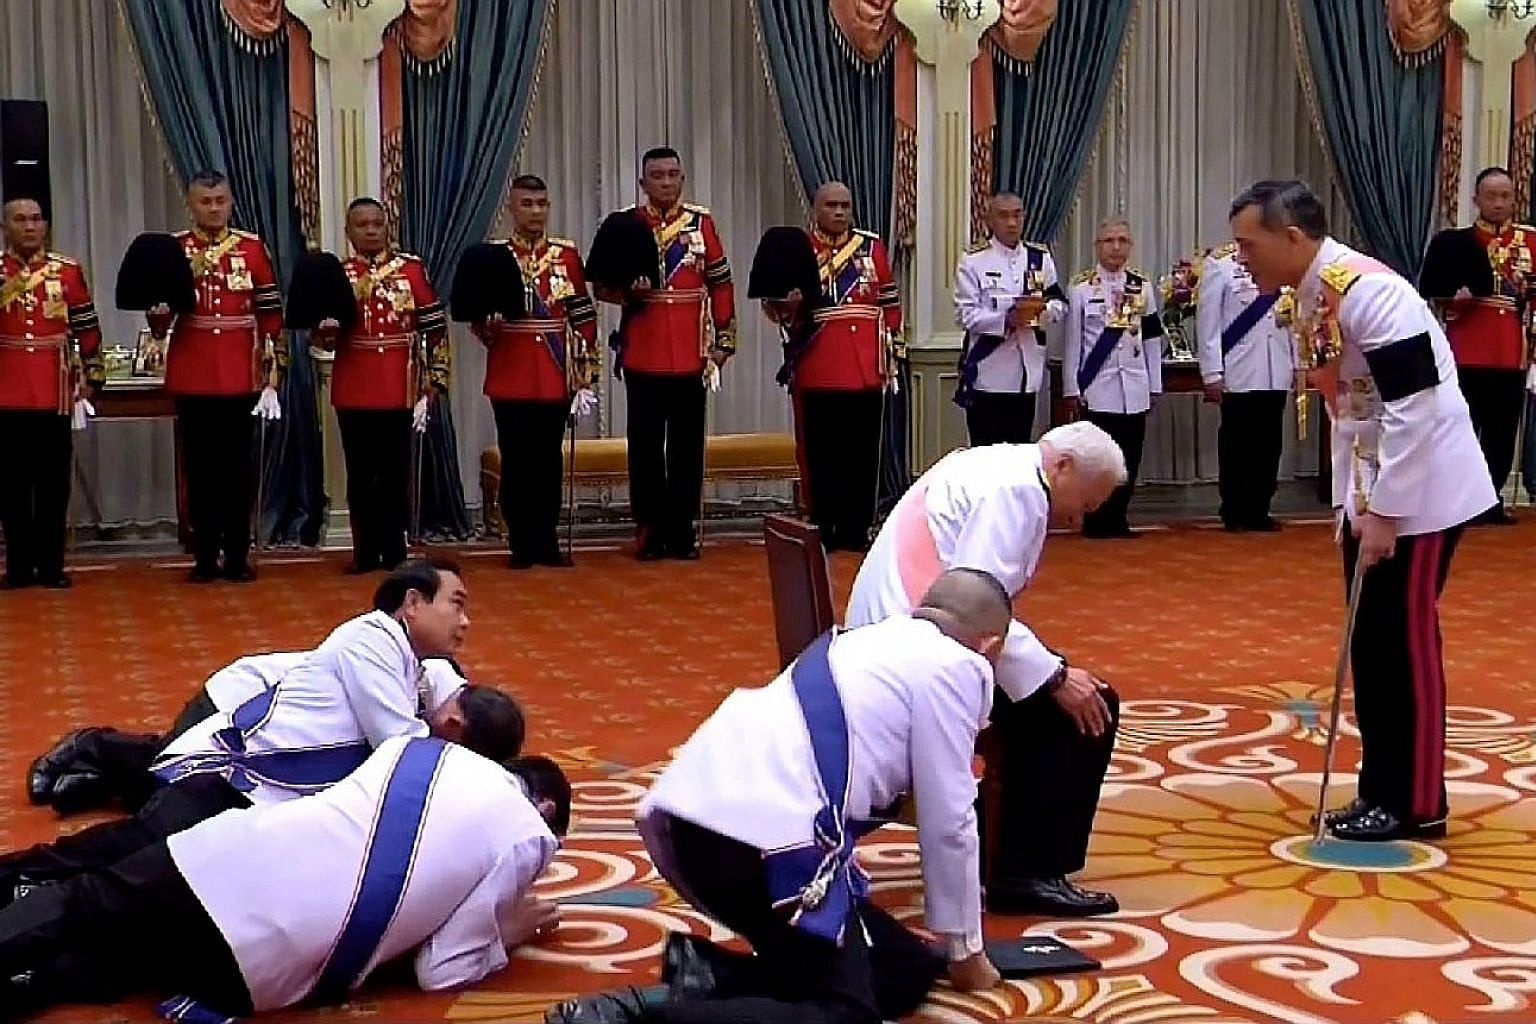 Prime Minister Prayut Chan-o-cha (in the back row, with head lifted) and Privy Council president Prem Tinsulanonda (with pink sash) prostrating before the newly appointed Thai King Maha Vajiralongkorn in Bangkok on Dec 1 last year, following the deat